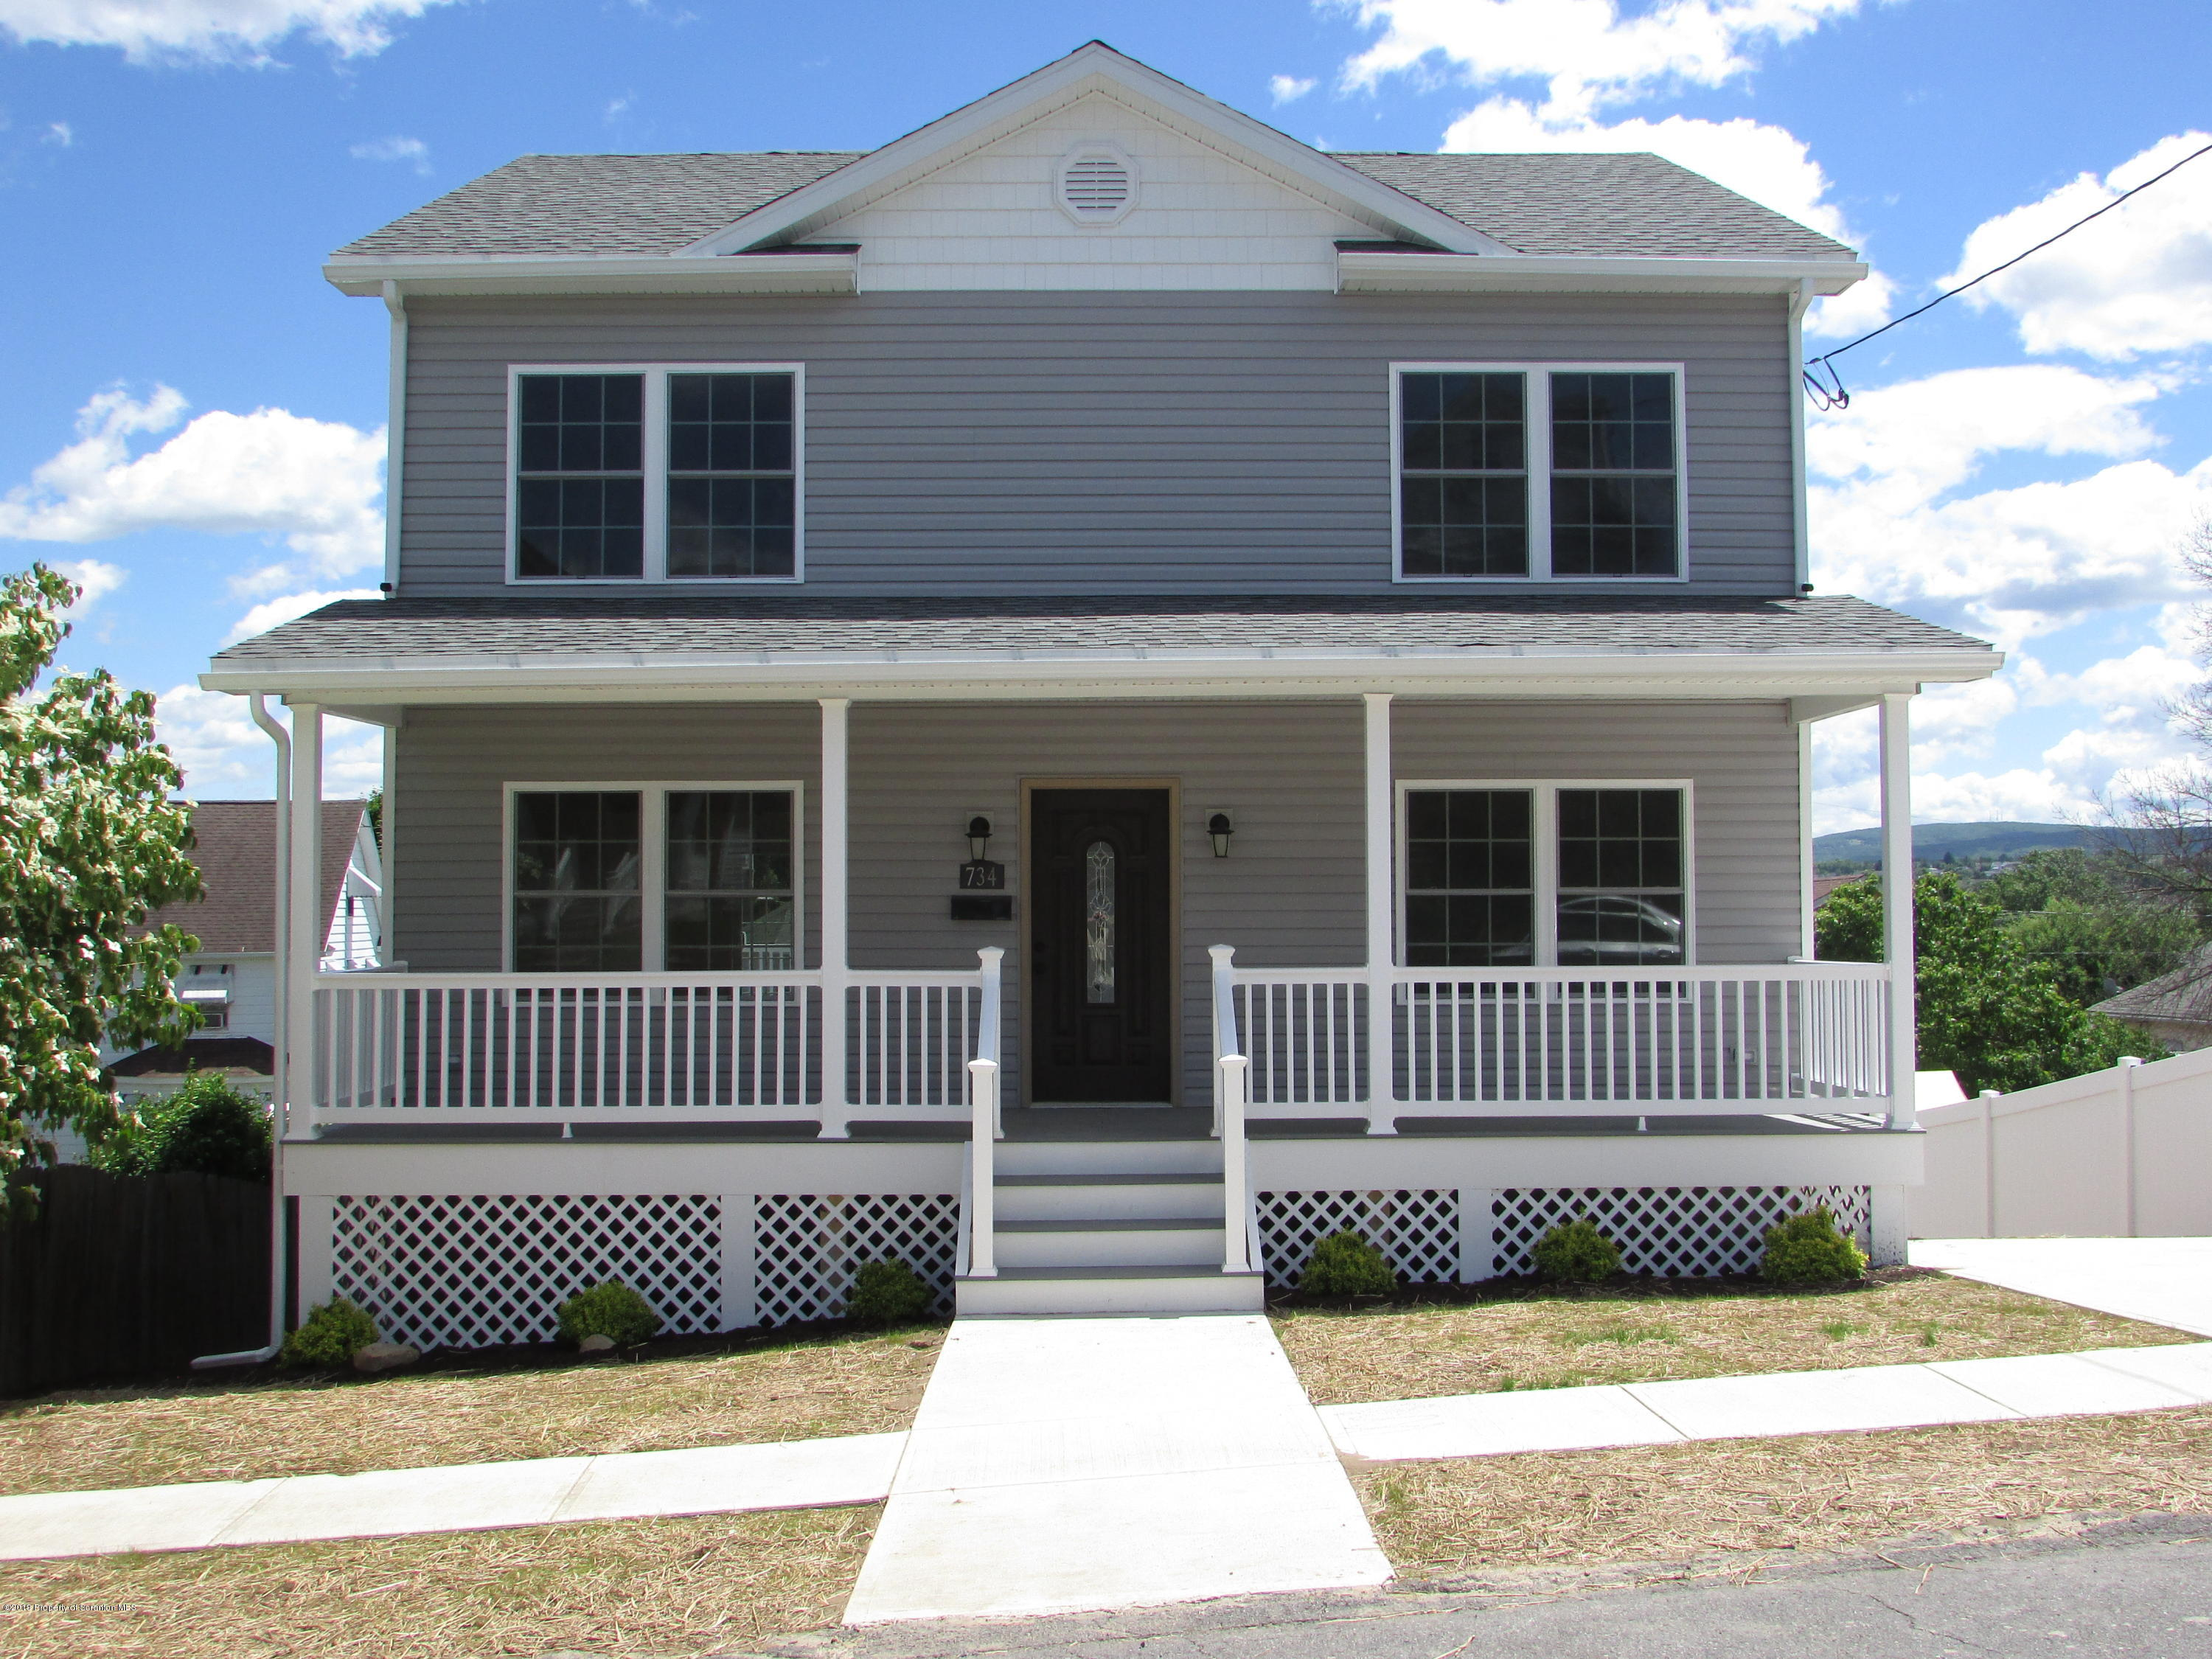 Single Family For Sale - 7 Rooms - 4 Bedrooms - 3 Bathrooms